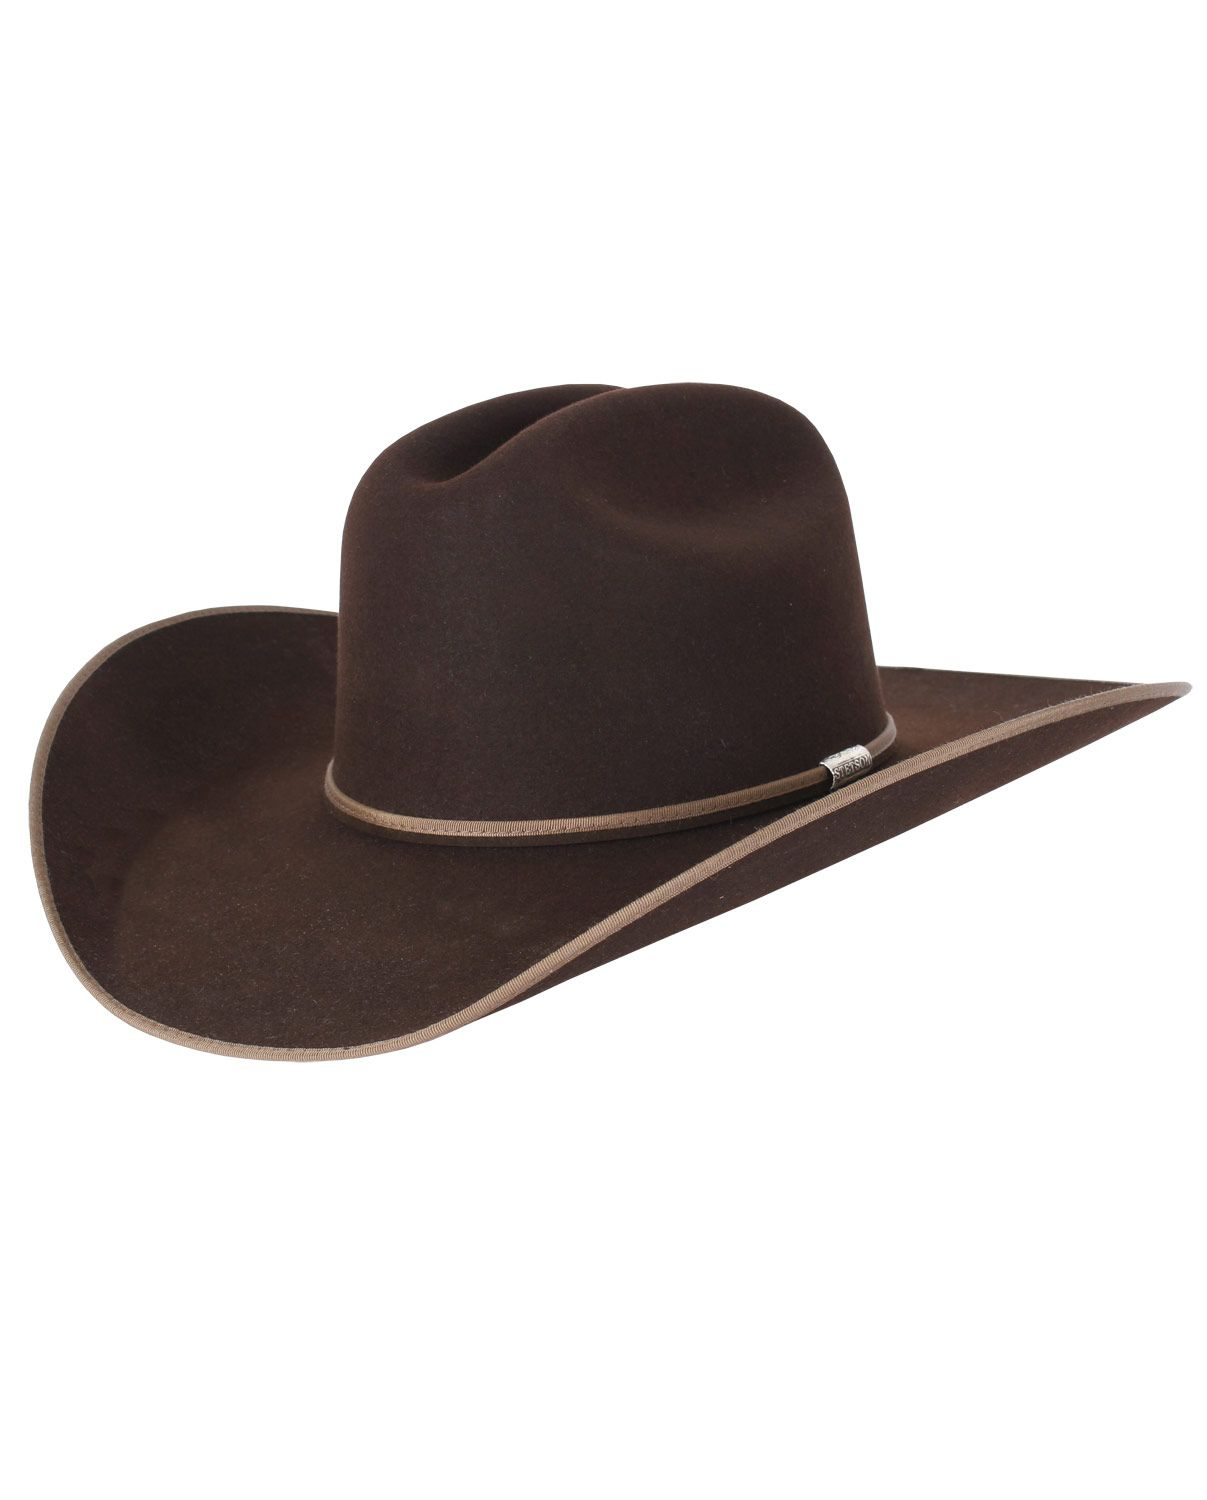 Stetson® Men s 4X Morro Bay Felt Hat    Felt    Men s    Cowboy Hats     Fort Western Online eba4cdc983c